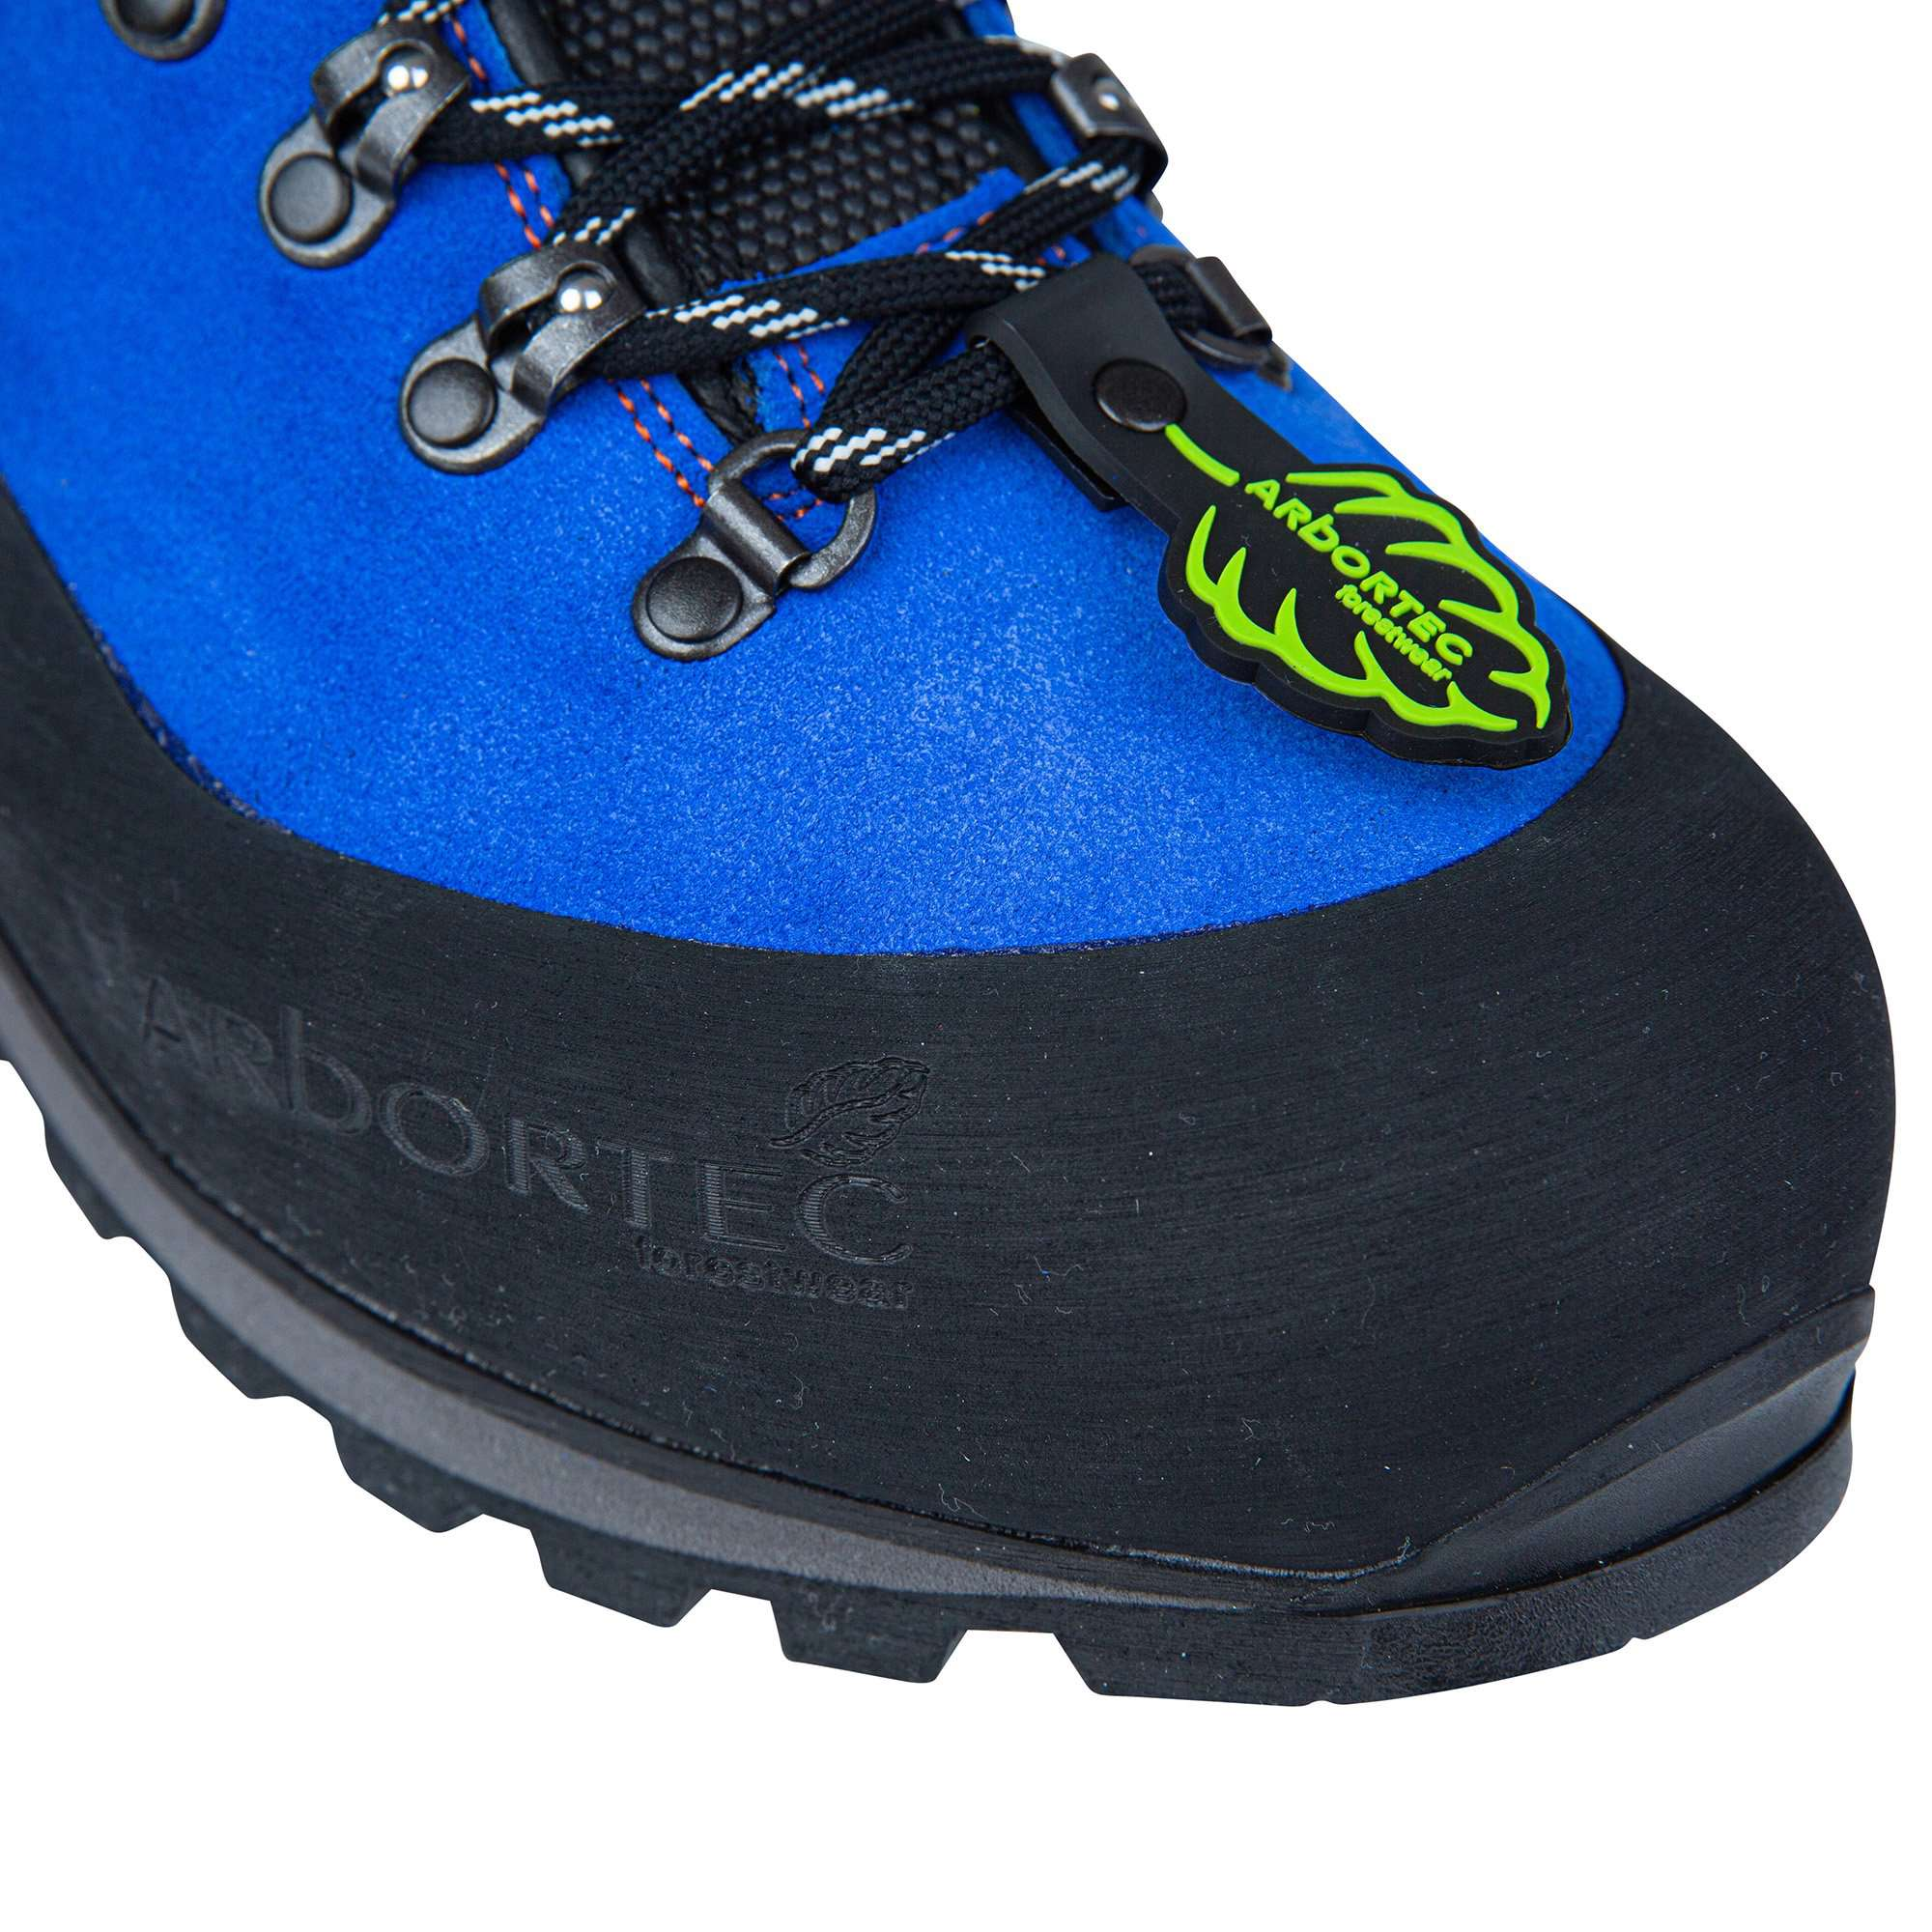 Scafell Lite Class 2 Chainsaw Boot - Blue - AT33300